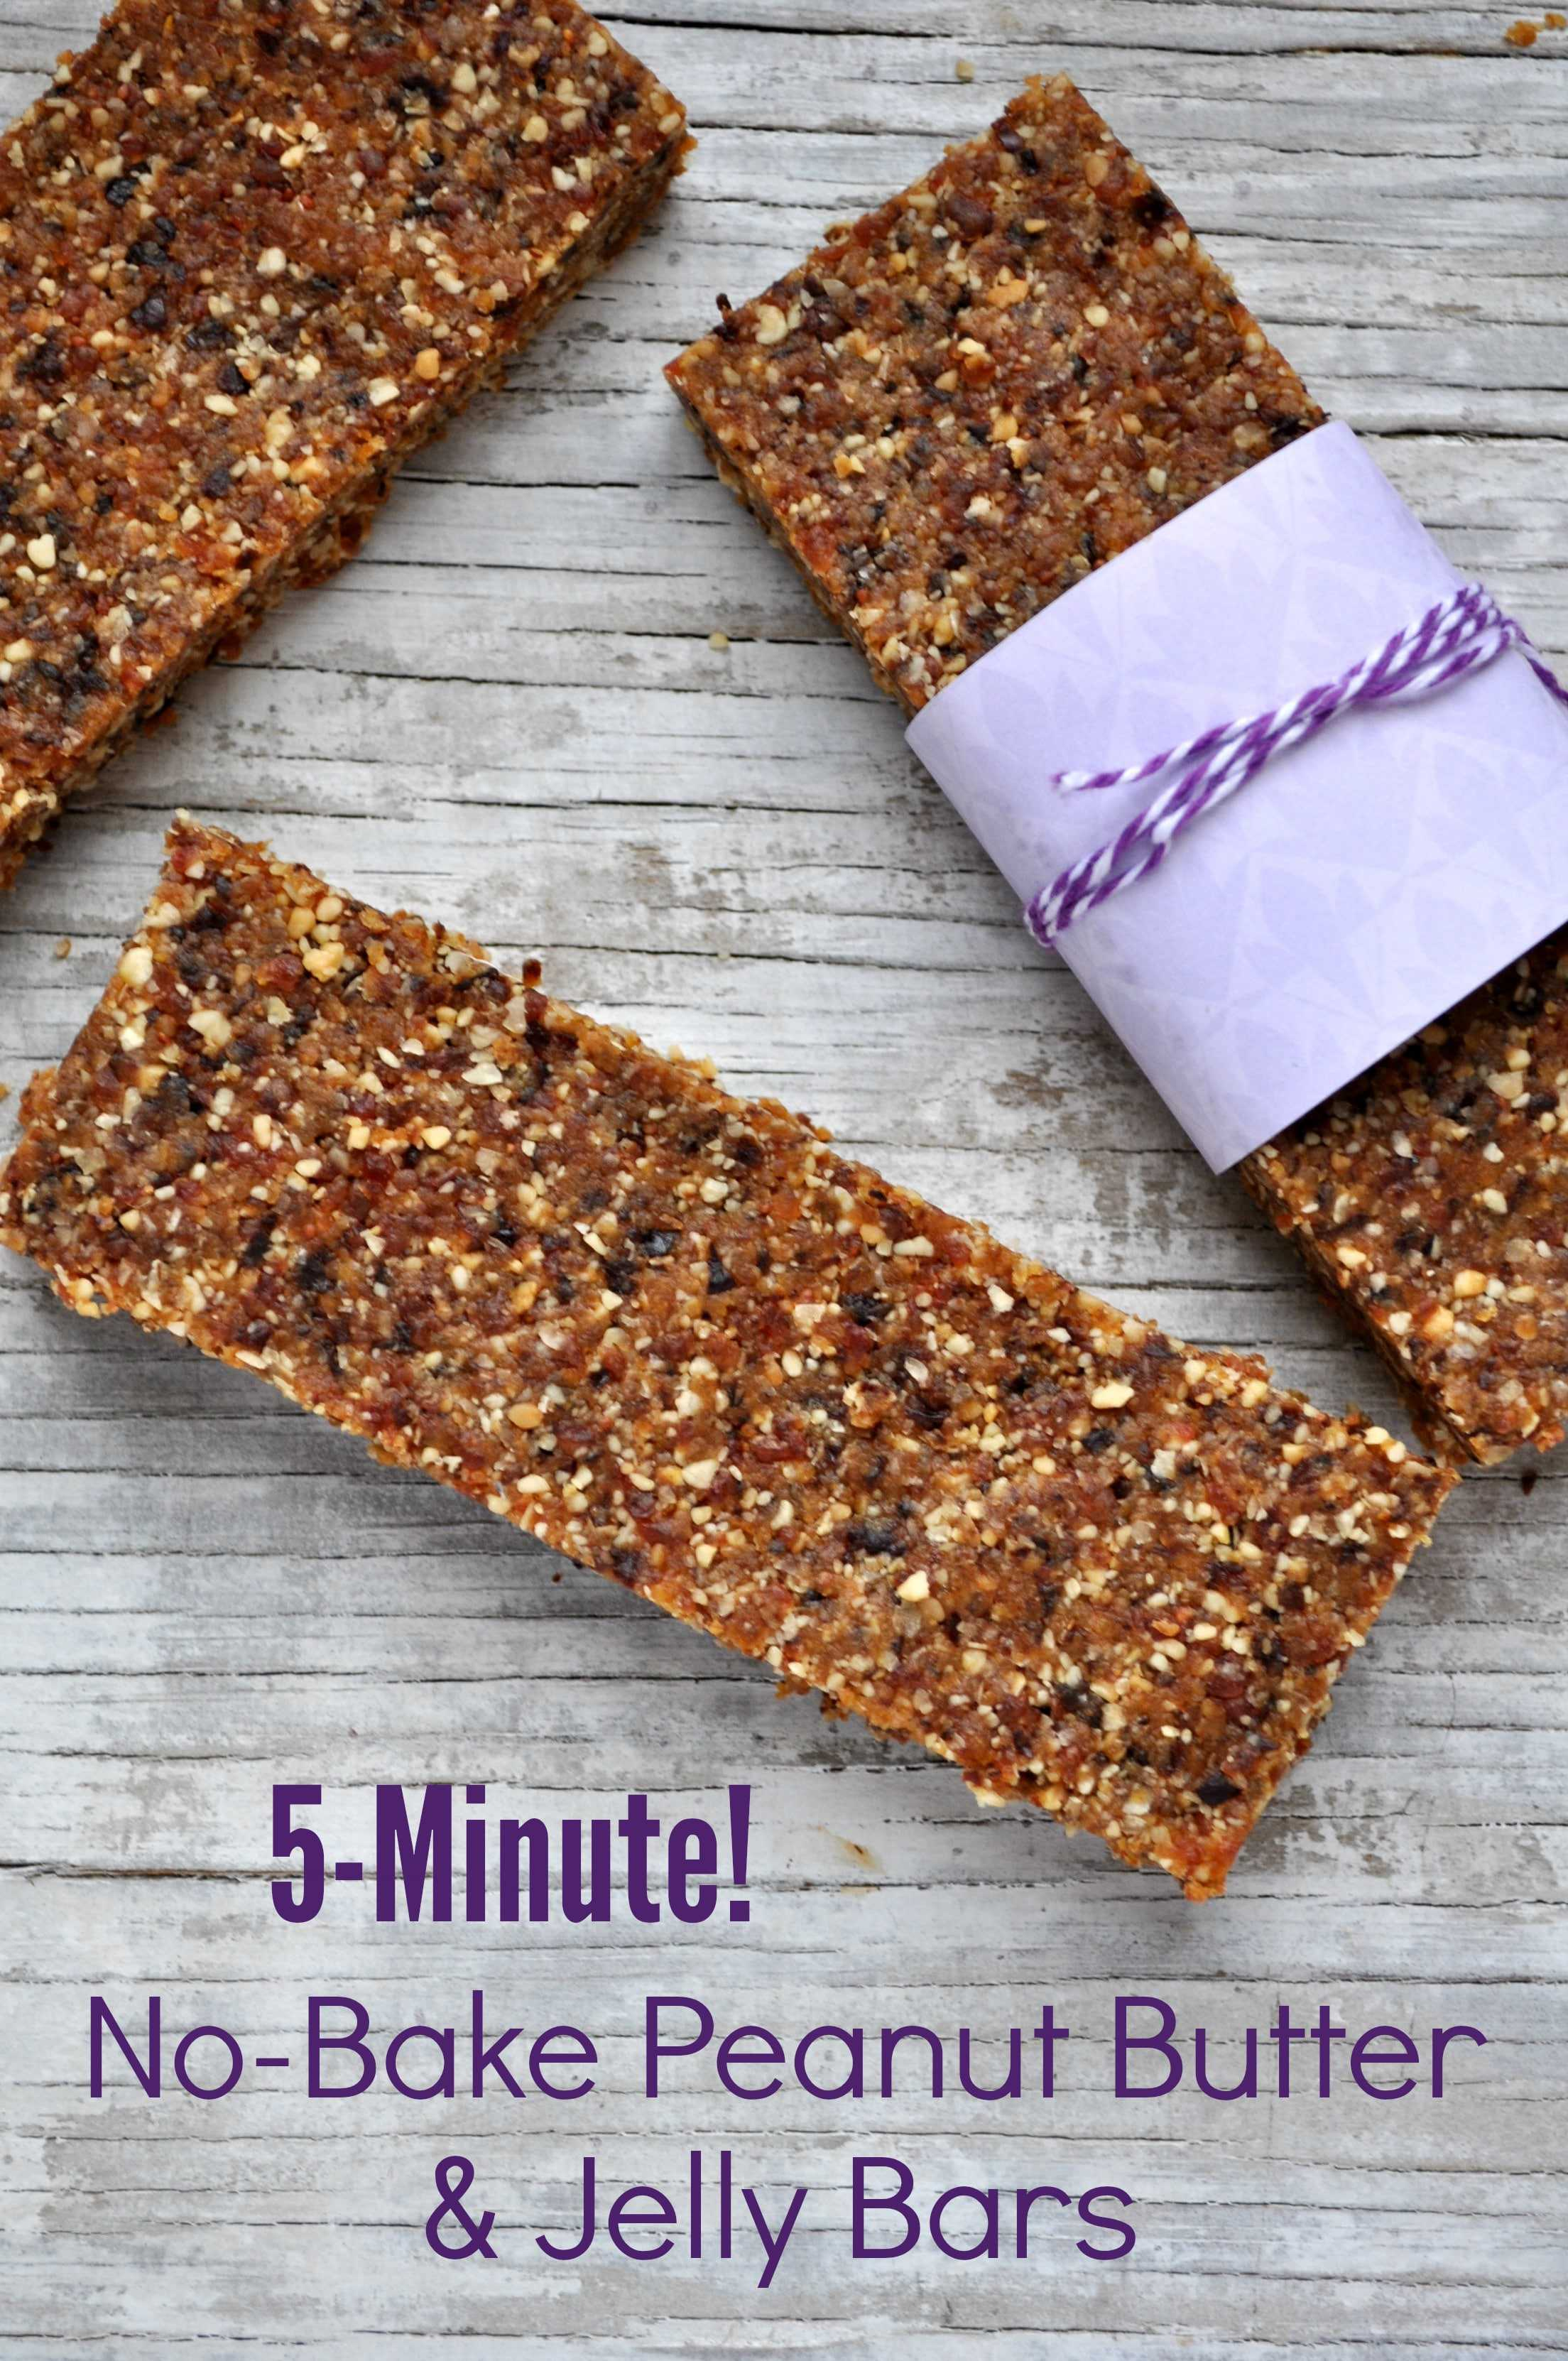 No Bake Peanut Butter and Jelly Bars 2